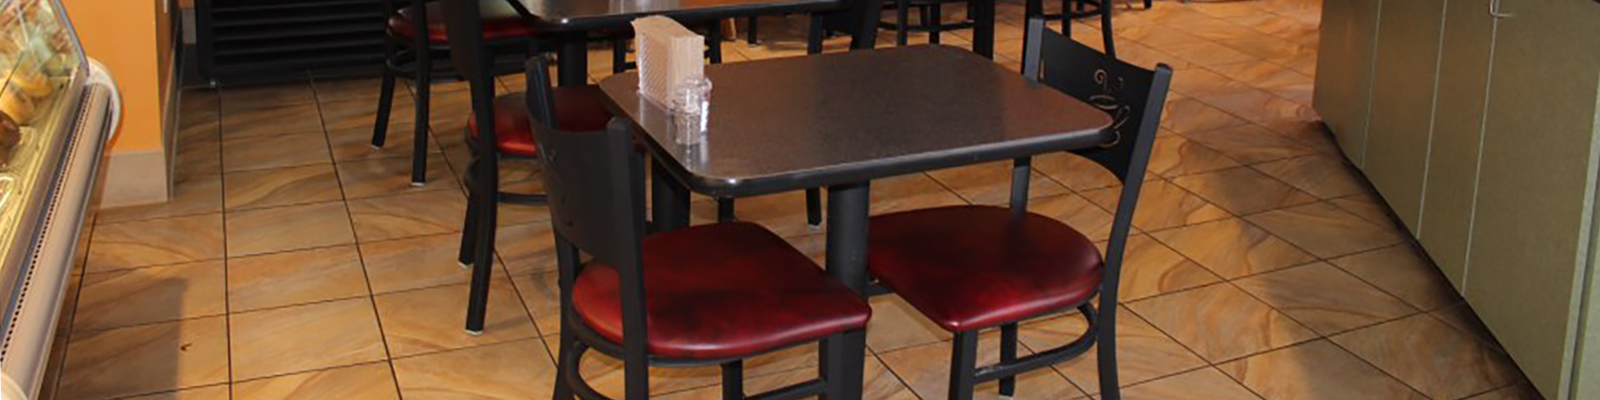 Popular Cafe Chairs